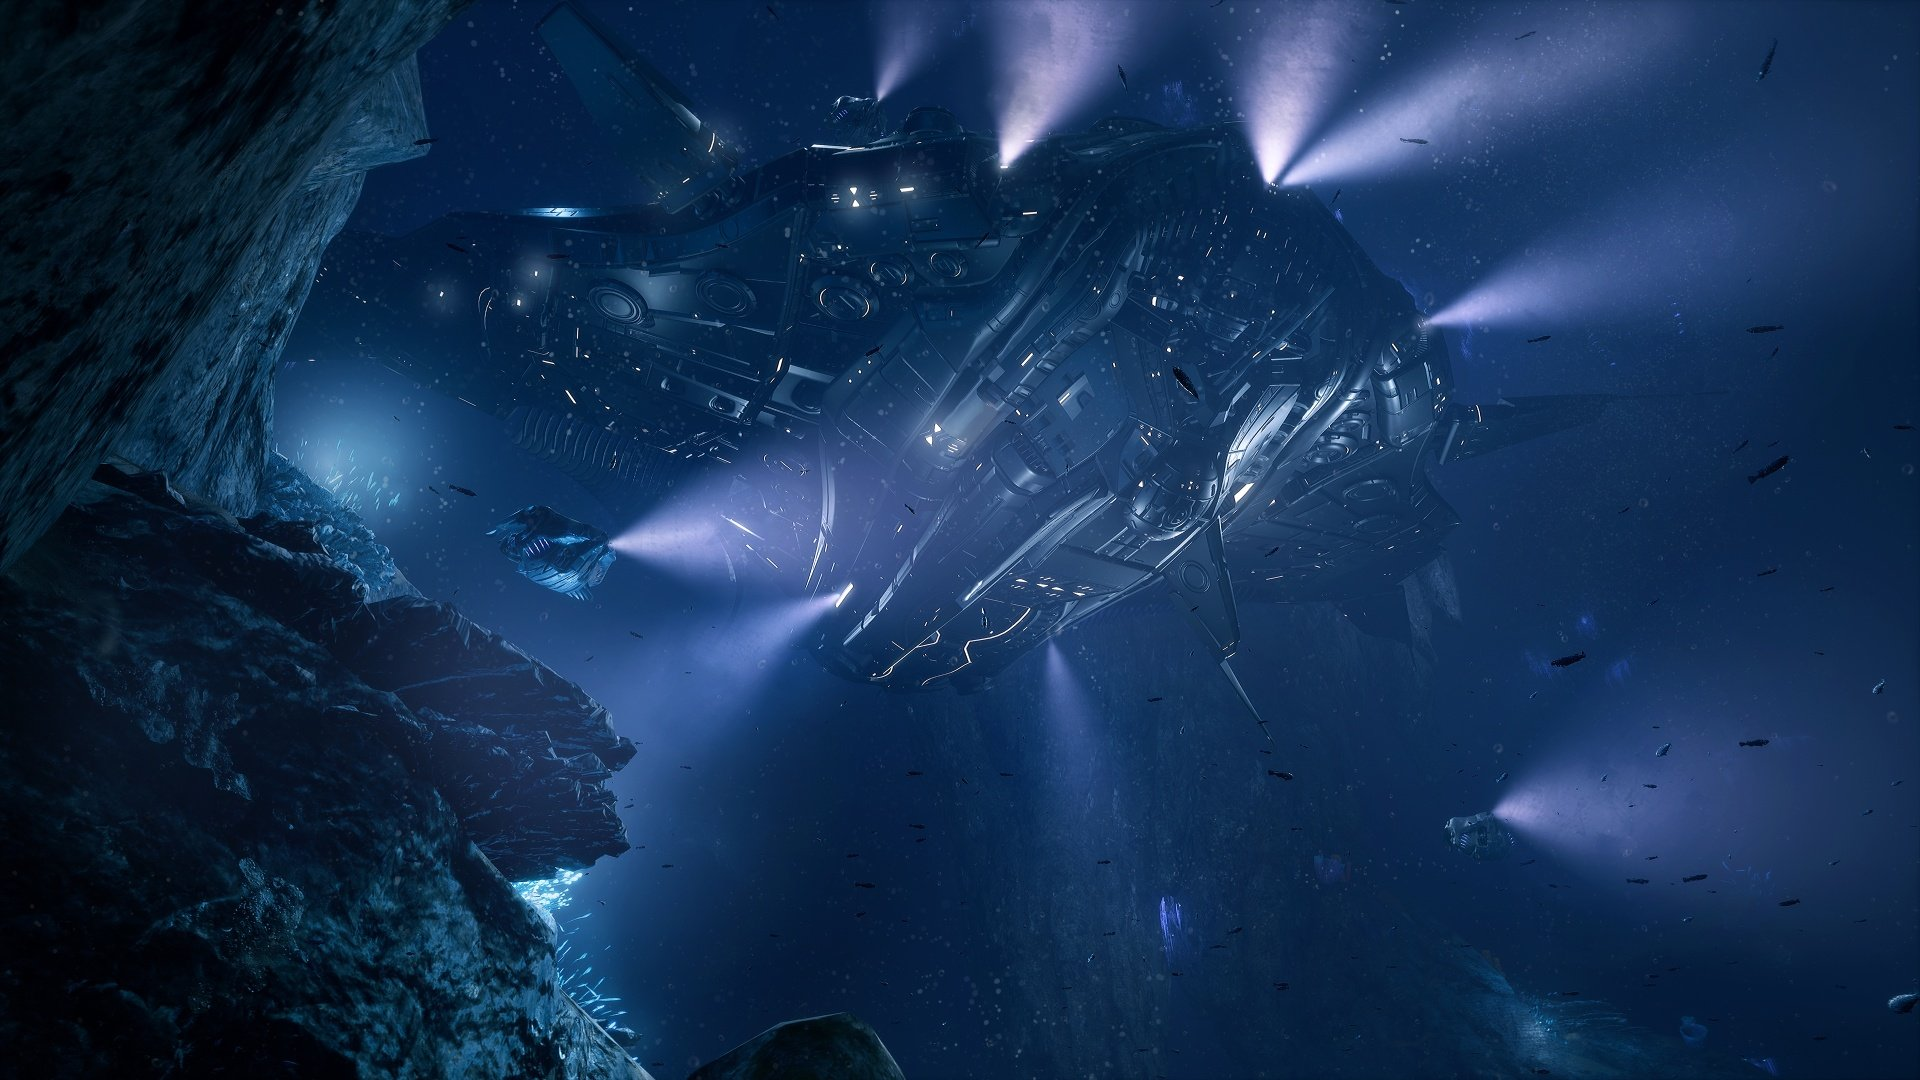 Aquanox Deep Descent Is A Unique Underwater Shooter Headed to PC This October